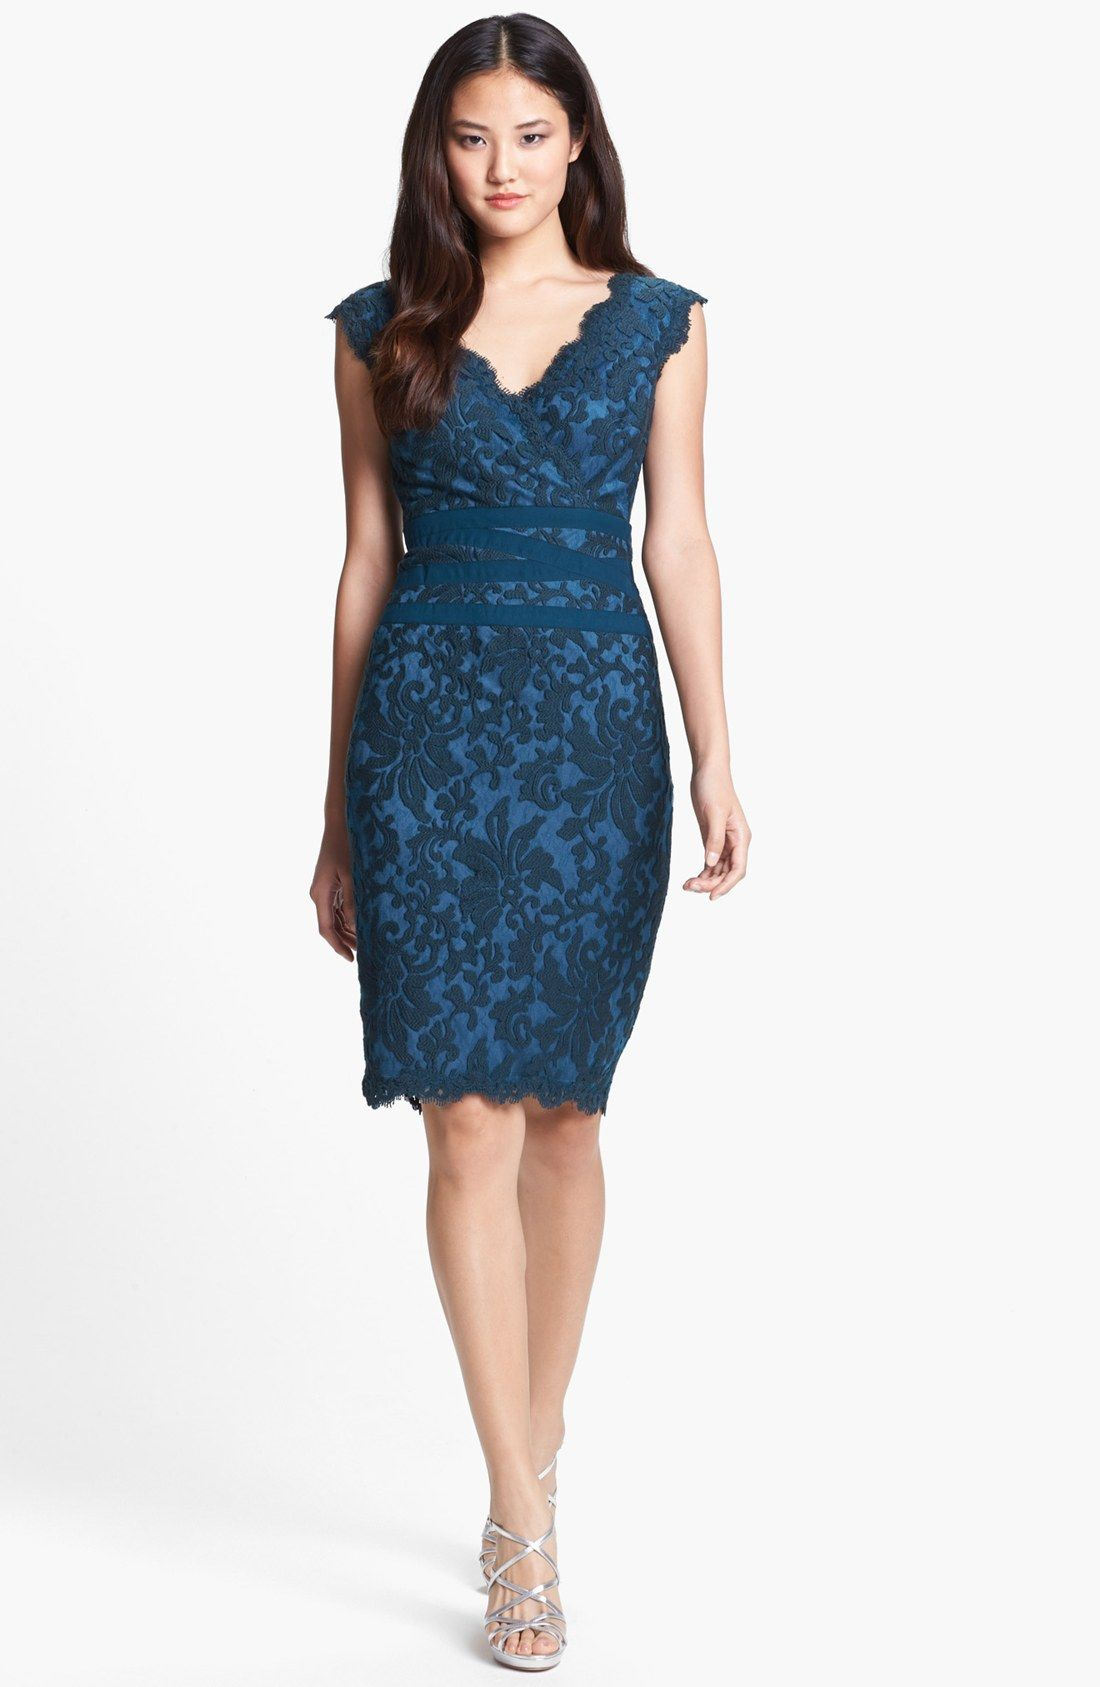 Embroidered Lace Sheath Dress | Tadashi shoji, Lace sheath dress ...